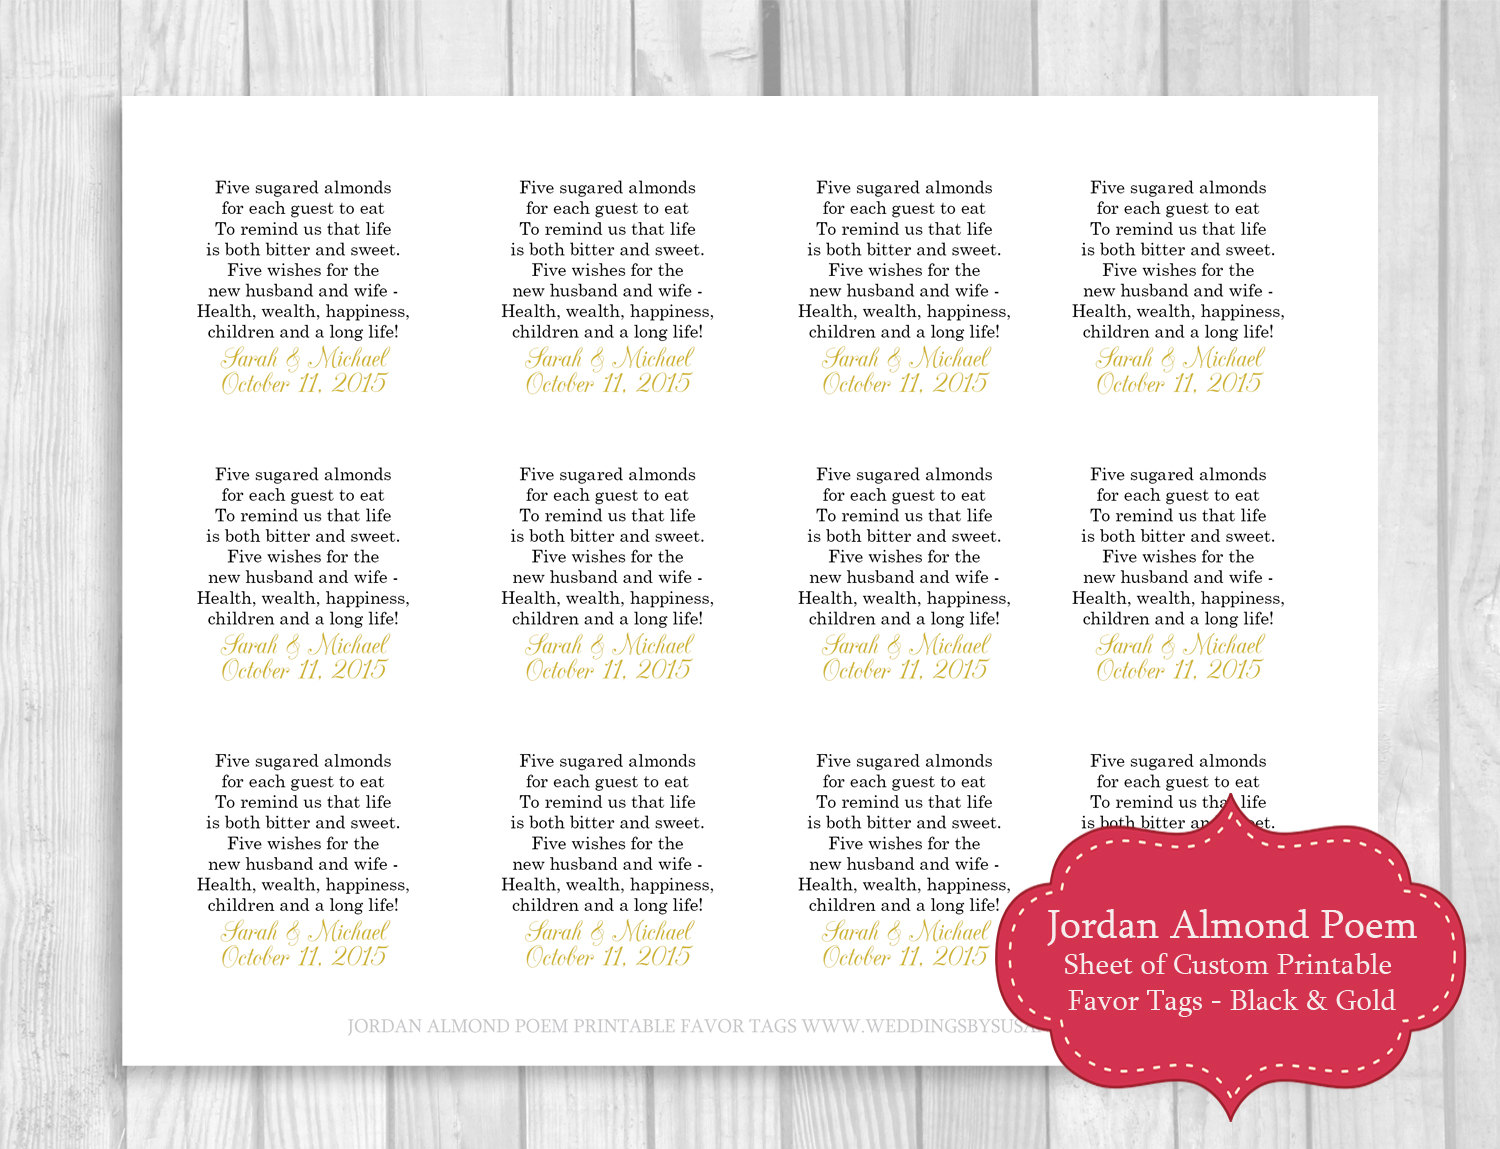 Printable Sheet of 12 Personalized Jordan Almond Poem Wedding